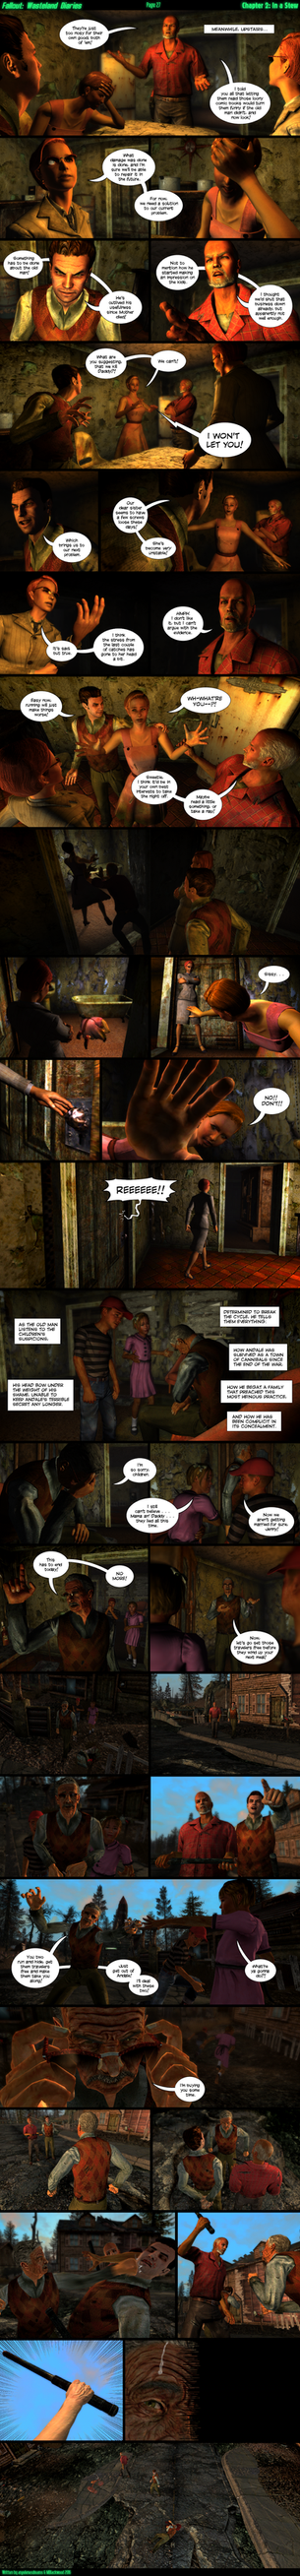 Wasteland Diaries - Page 27 by angelenesdreams